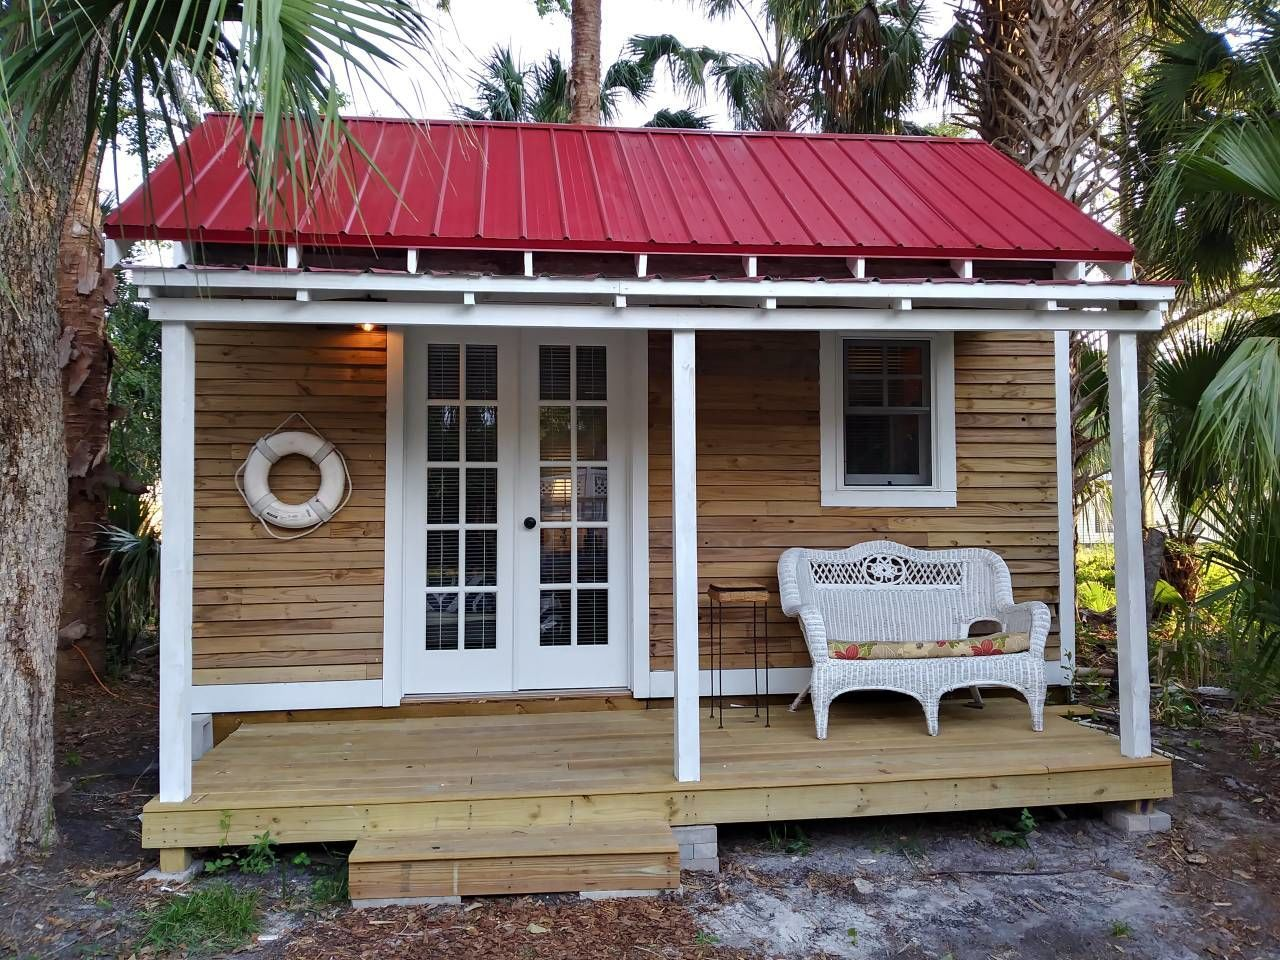 Magnificent The Most Adorable Tiny Homes In Every State For The Home Interior Design Ideas Clesiryabchikinfo